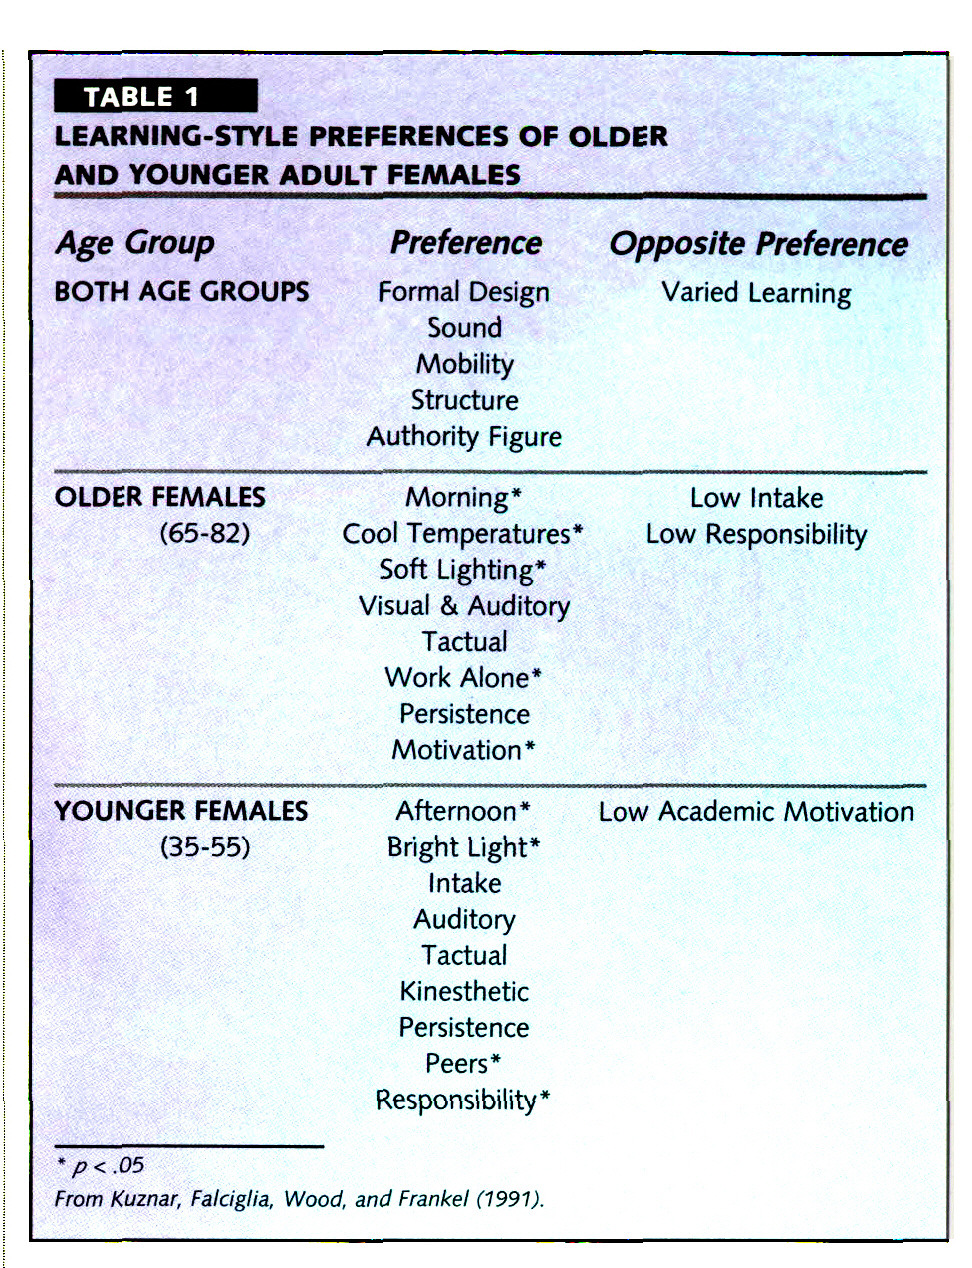 interview of a successful aging adult Knight, tess and ricciardelli, lina 2003, successful ageing : perceptions of  adults aged between 70 and 101 years, international journal of aging and human .